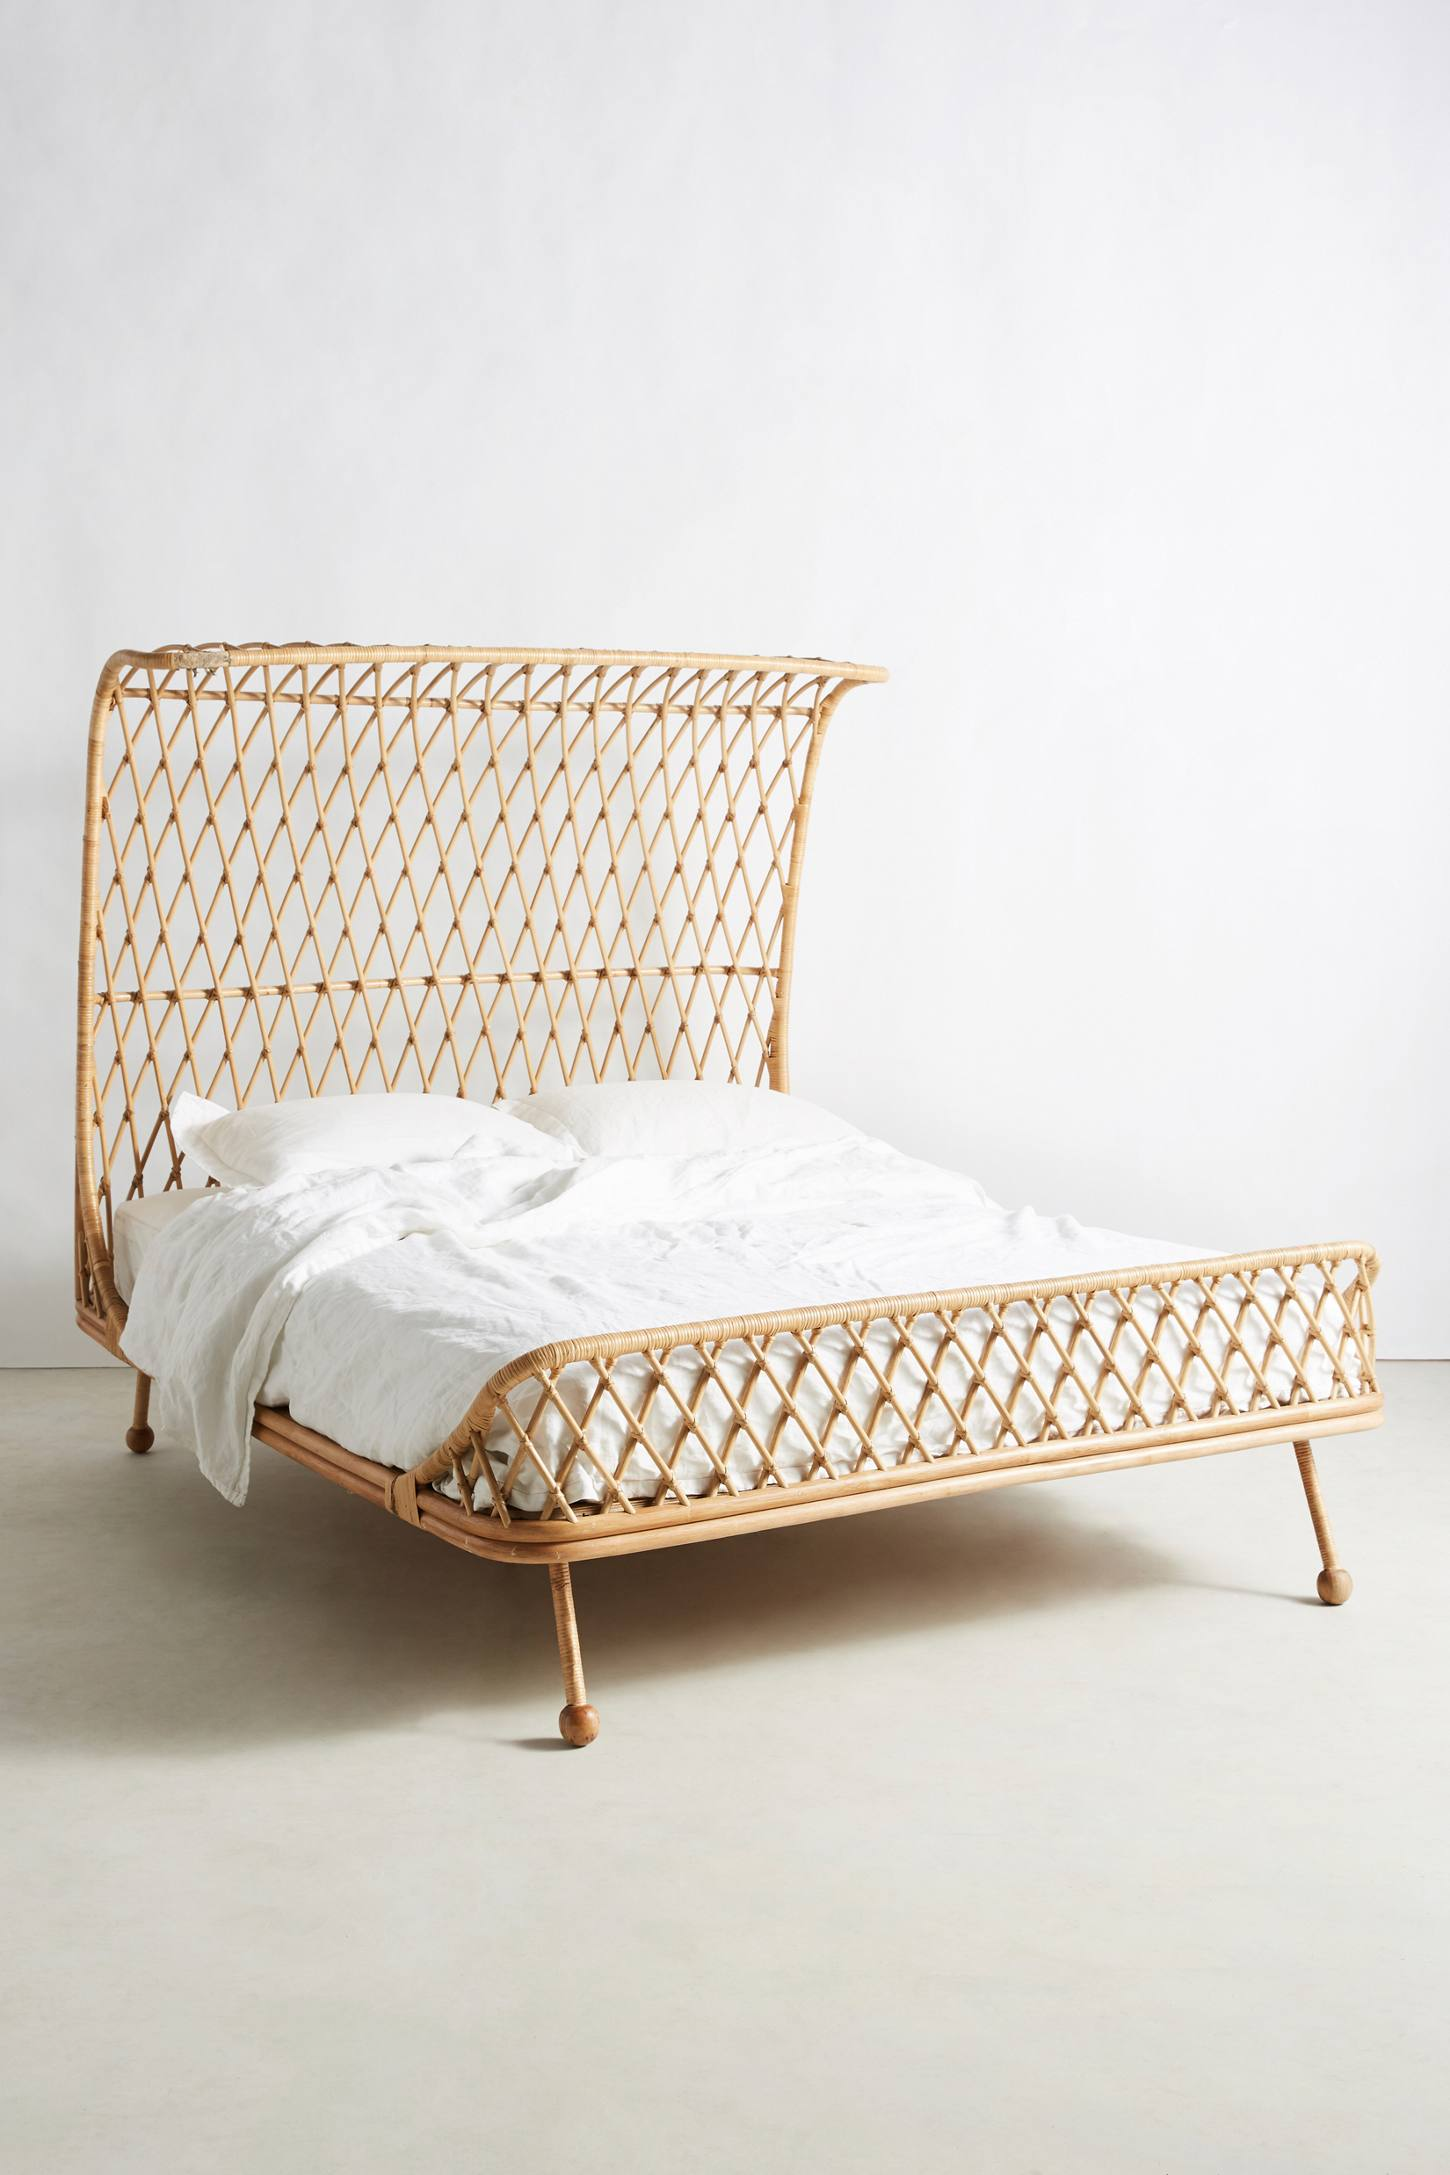 rattan roundup 21 cane cuties the beat that my heart skipped